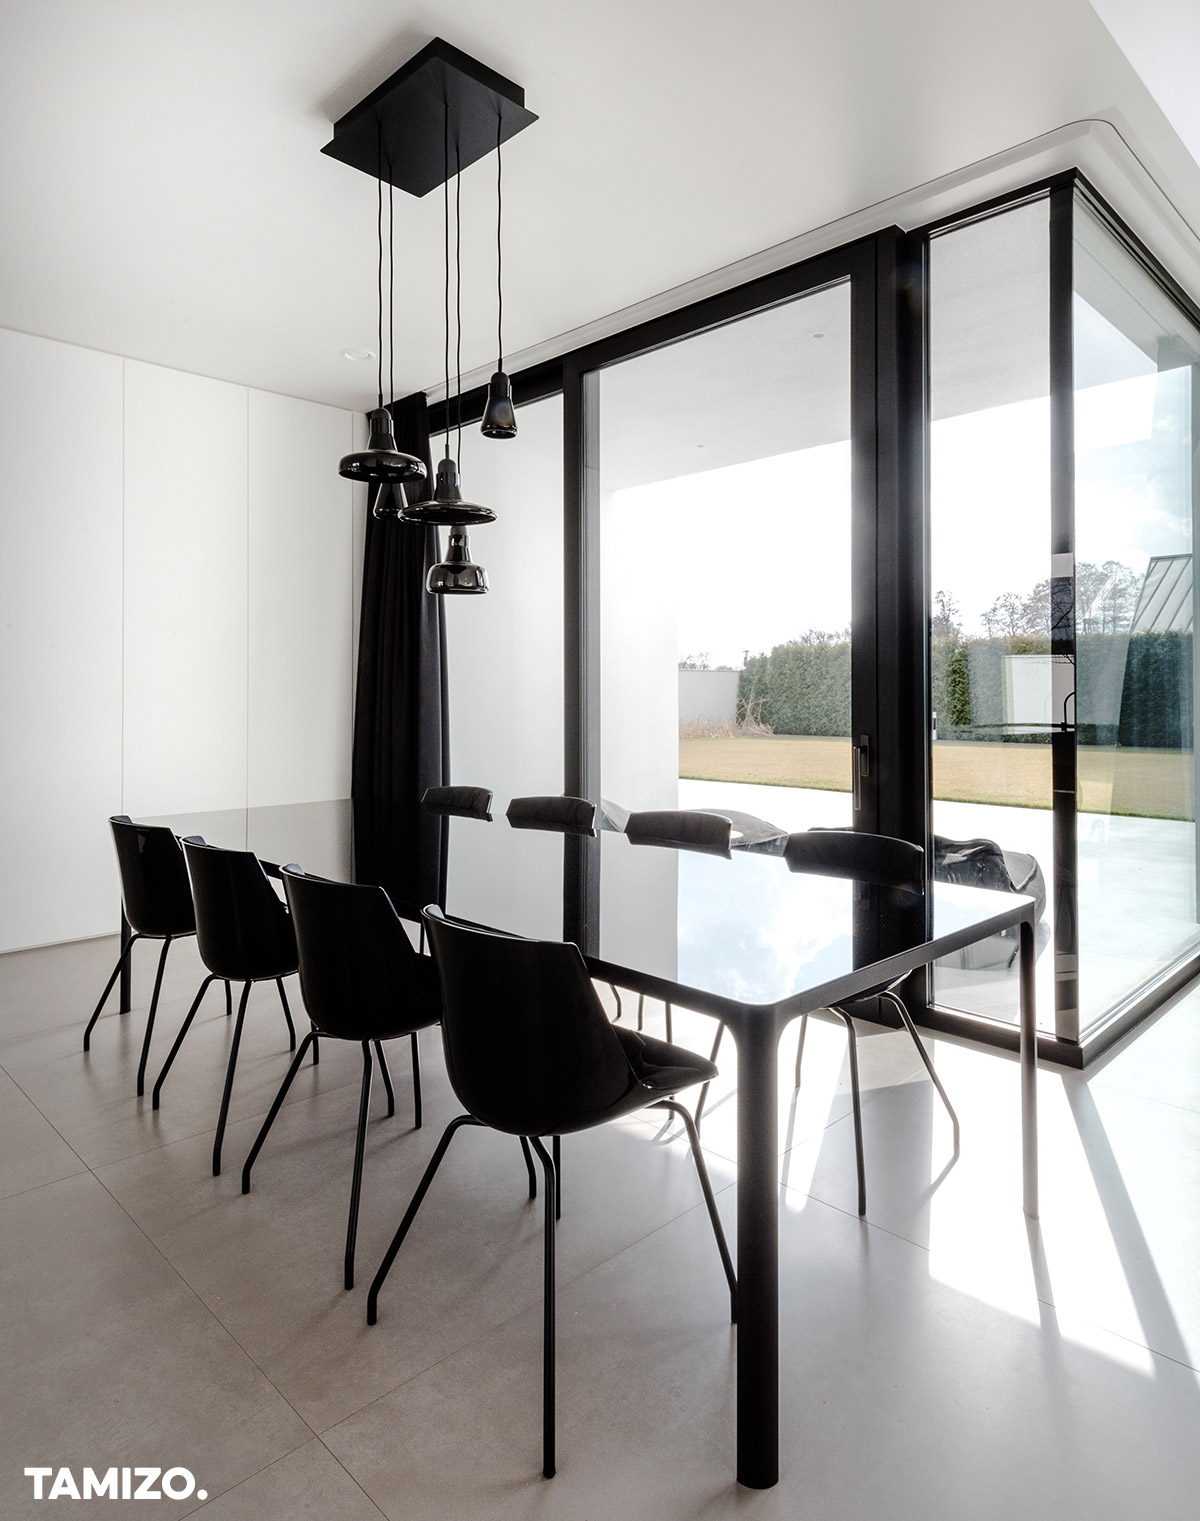 014_tamizo_architects_interior_house_realization_warsaw_poland_20